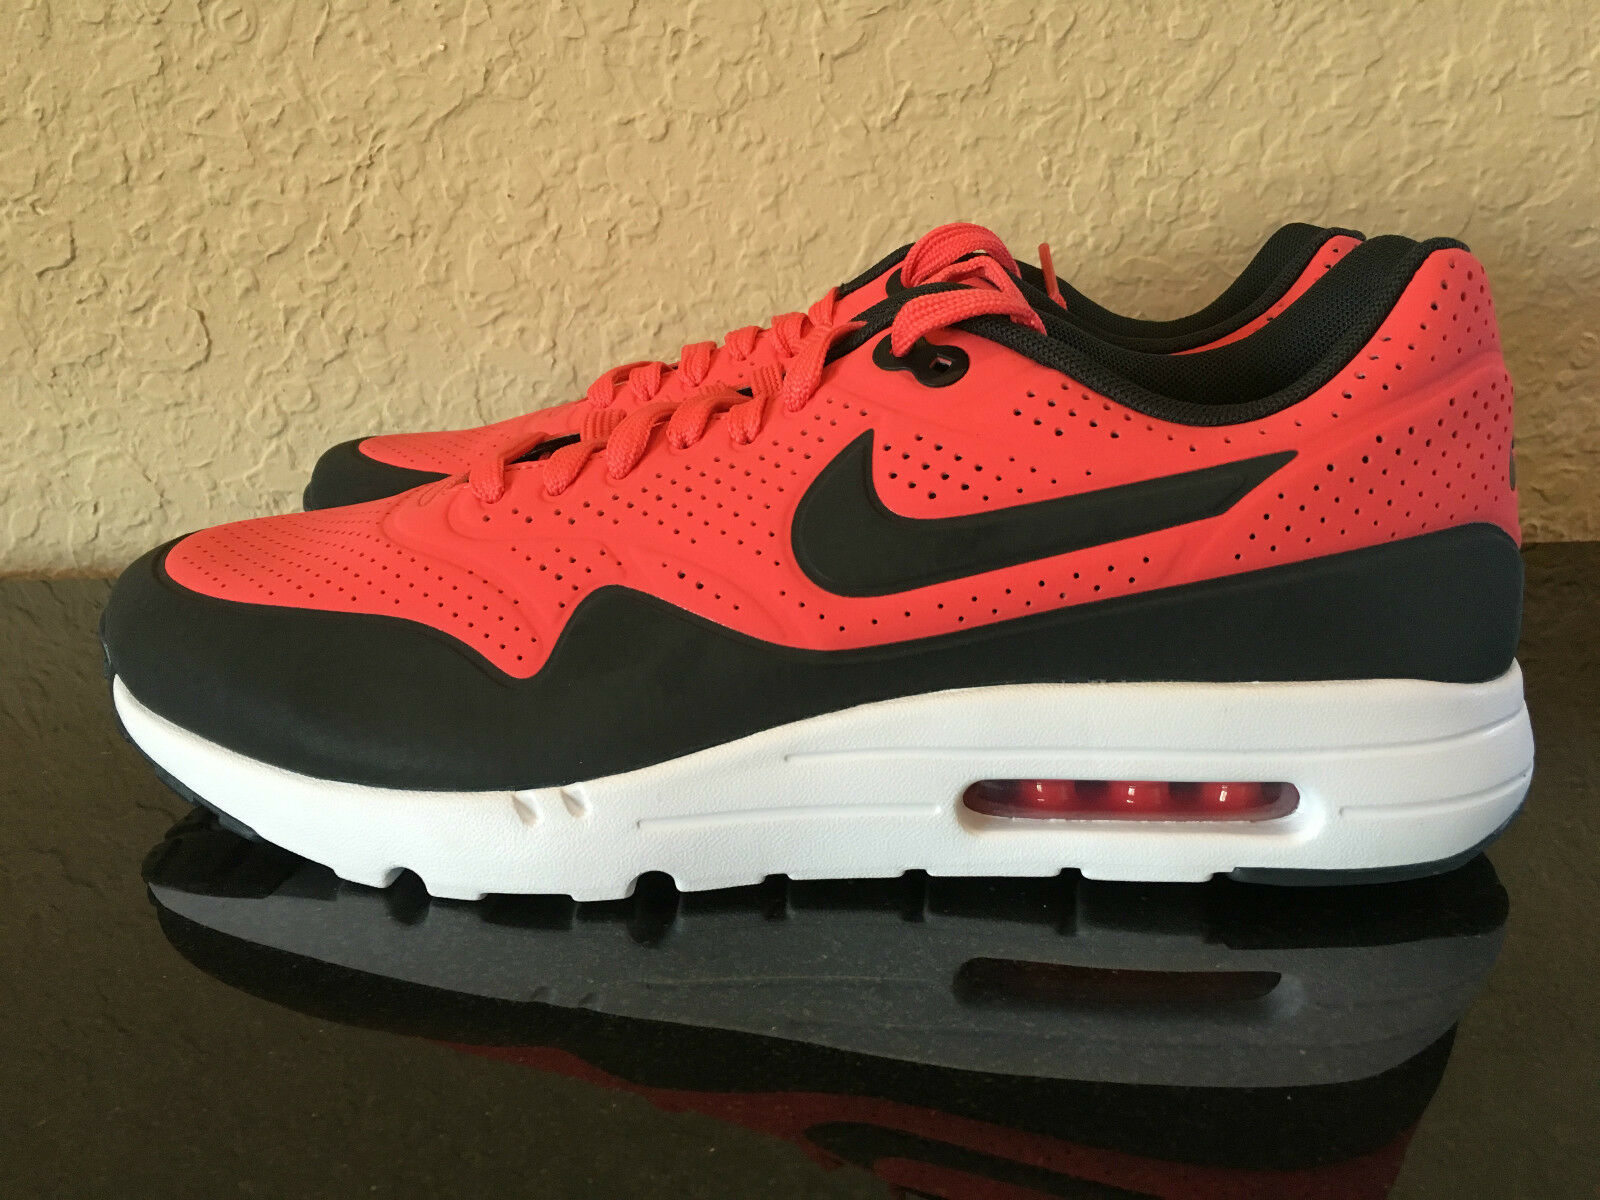 best website f2926 c0430 ... MENS NIKE AIR MAX 1 ULTRA MOIRE MOIRE MOIRE RIO RED cb848a ...